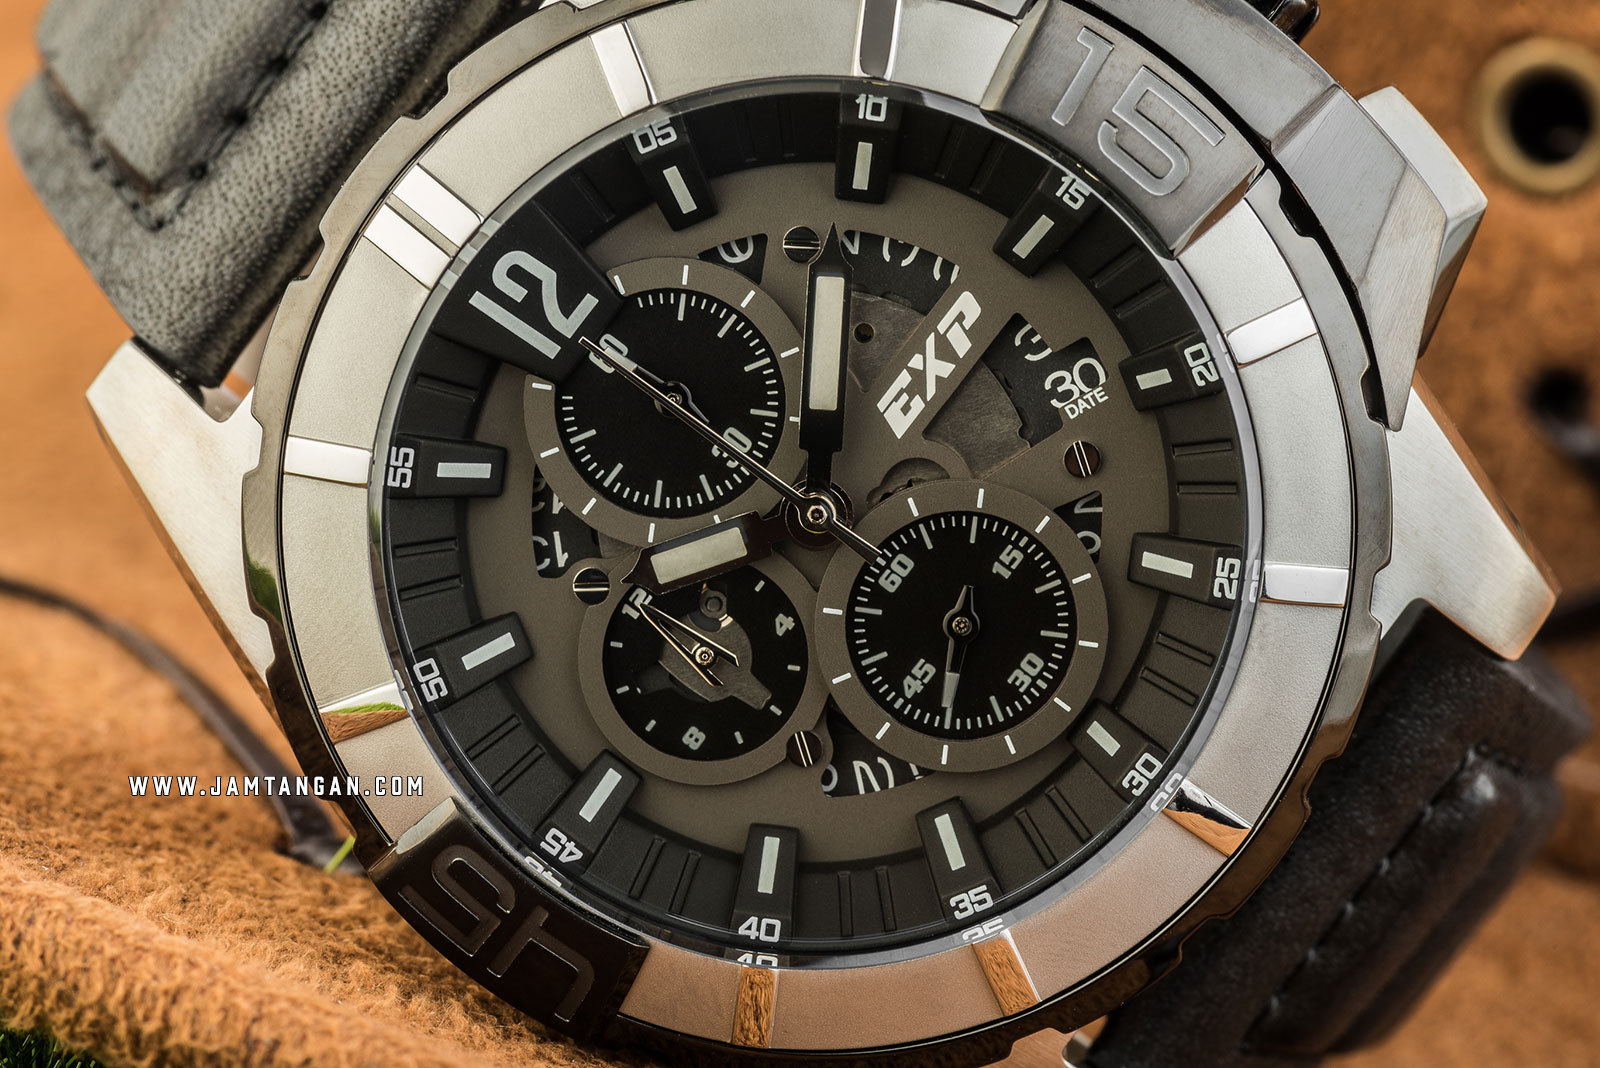 Expedition E 3010 MC LTBBA Chronograph Men Black Dial Black Leather Strap Machtwatch